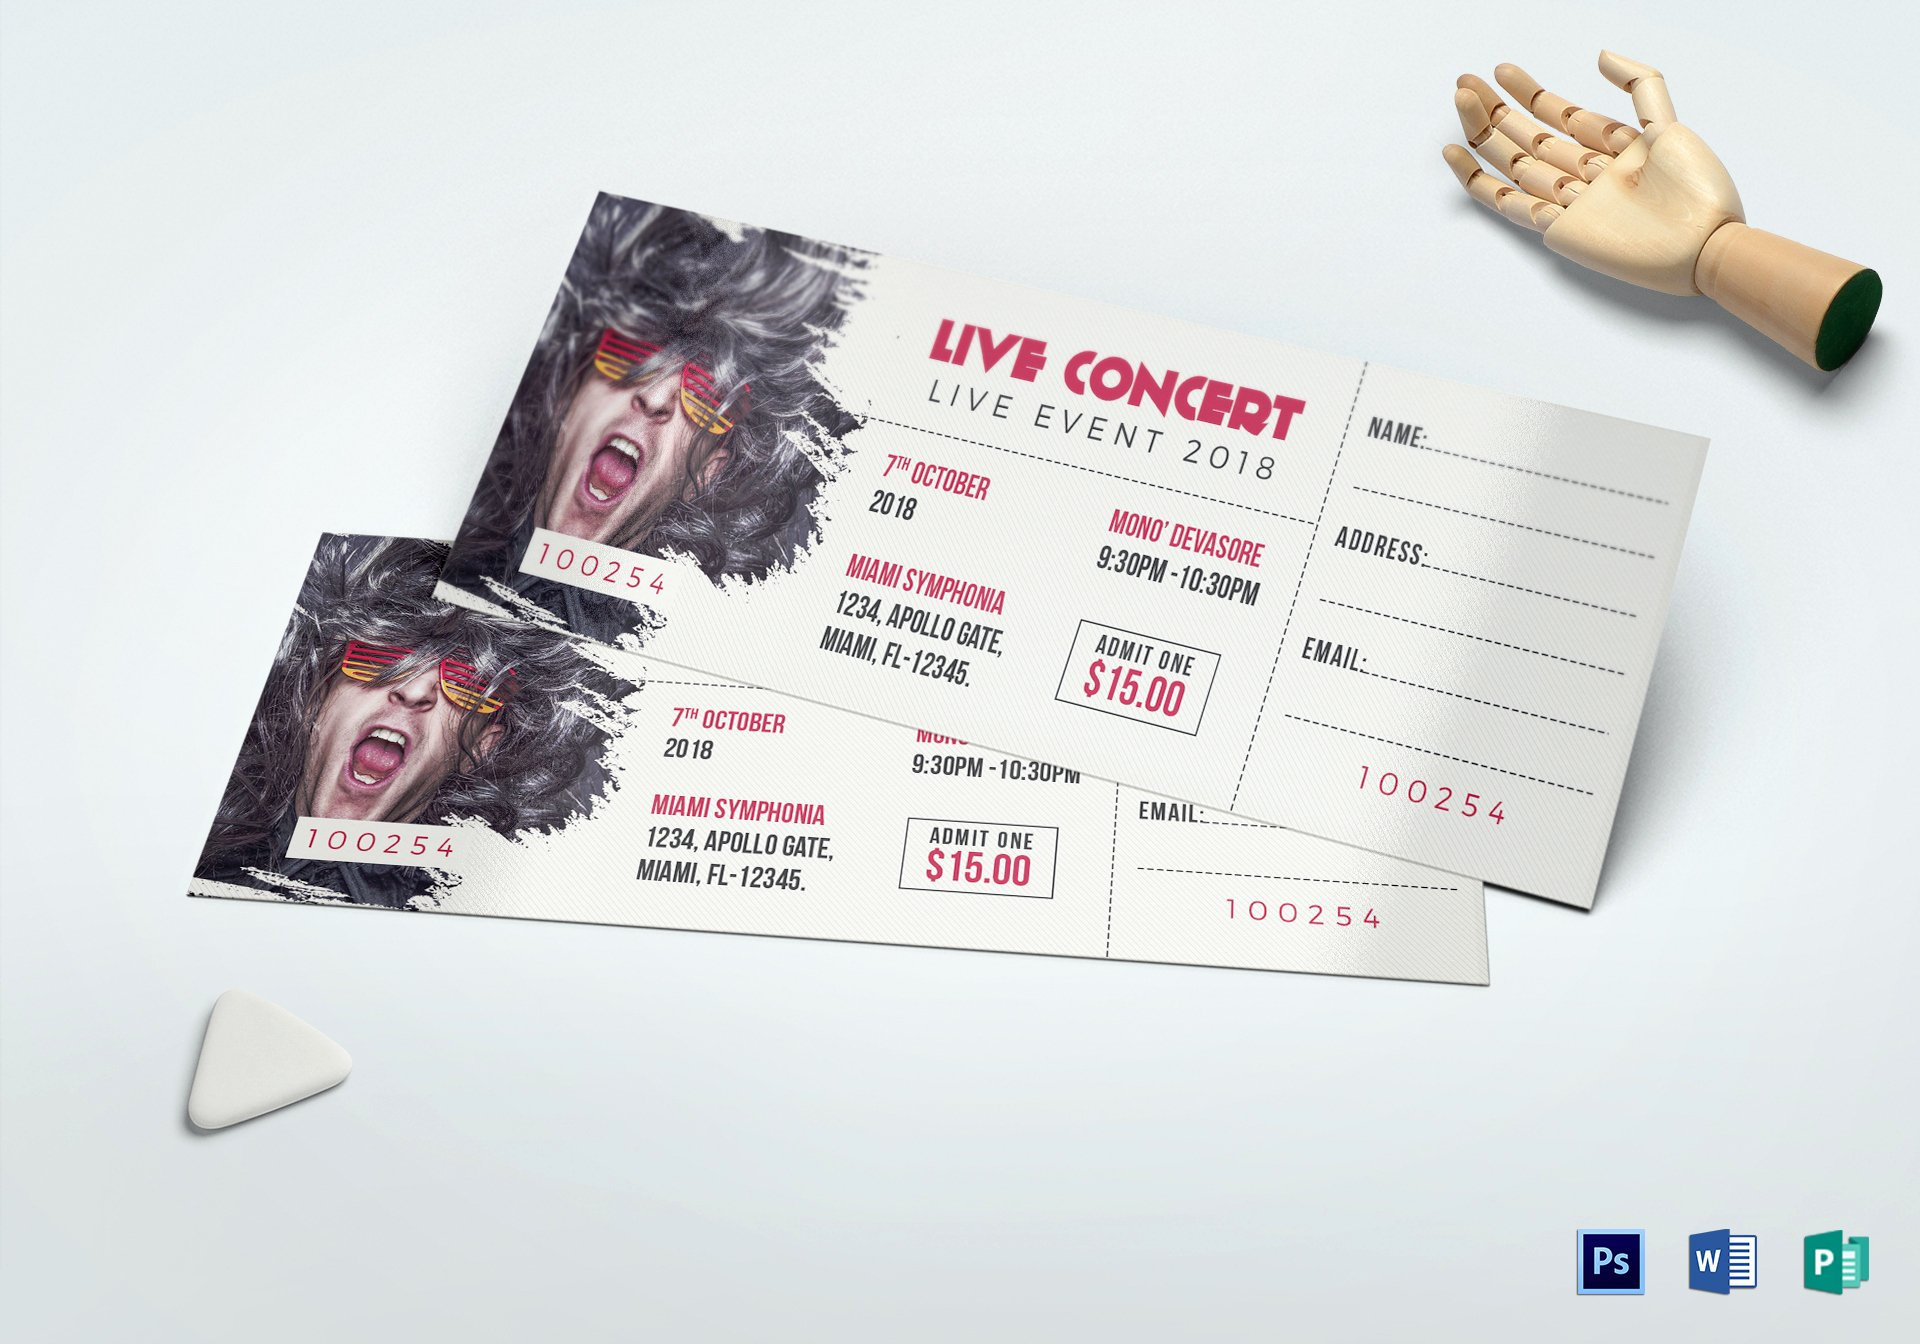 Concert Ticket Template Psd New Live Concert Ticket Design Template In Word Psd Pages